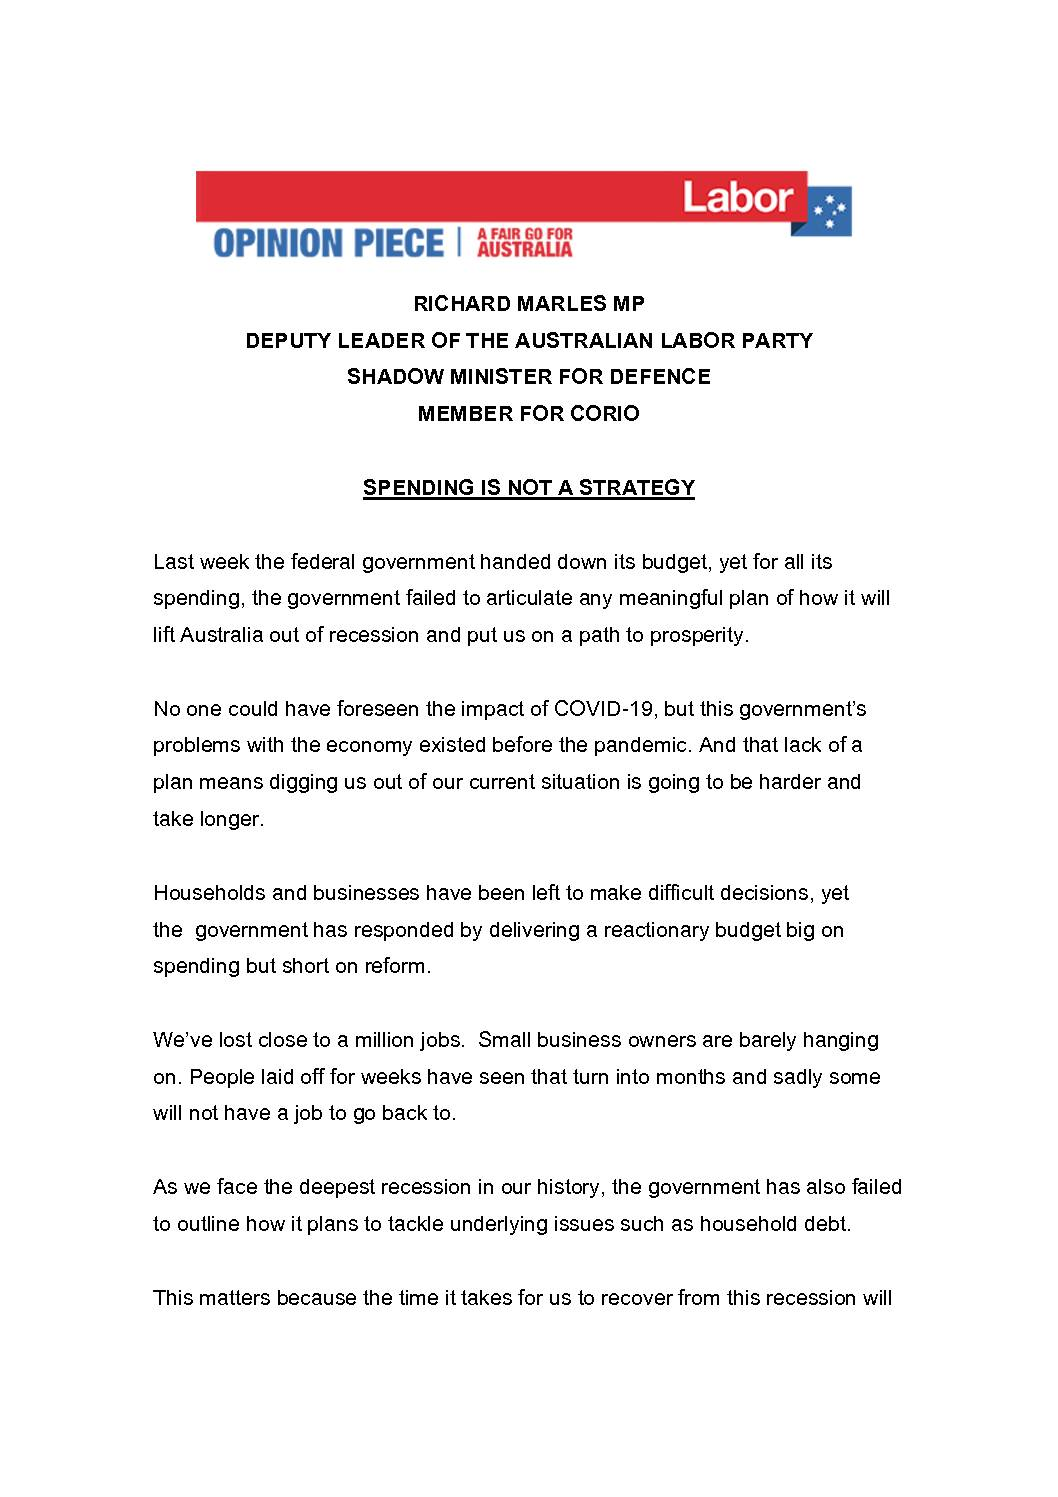 20.10.16-SPENDING-IS-NOT-OUR-STRATEGY-OPINION-PIECE